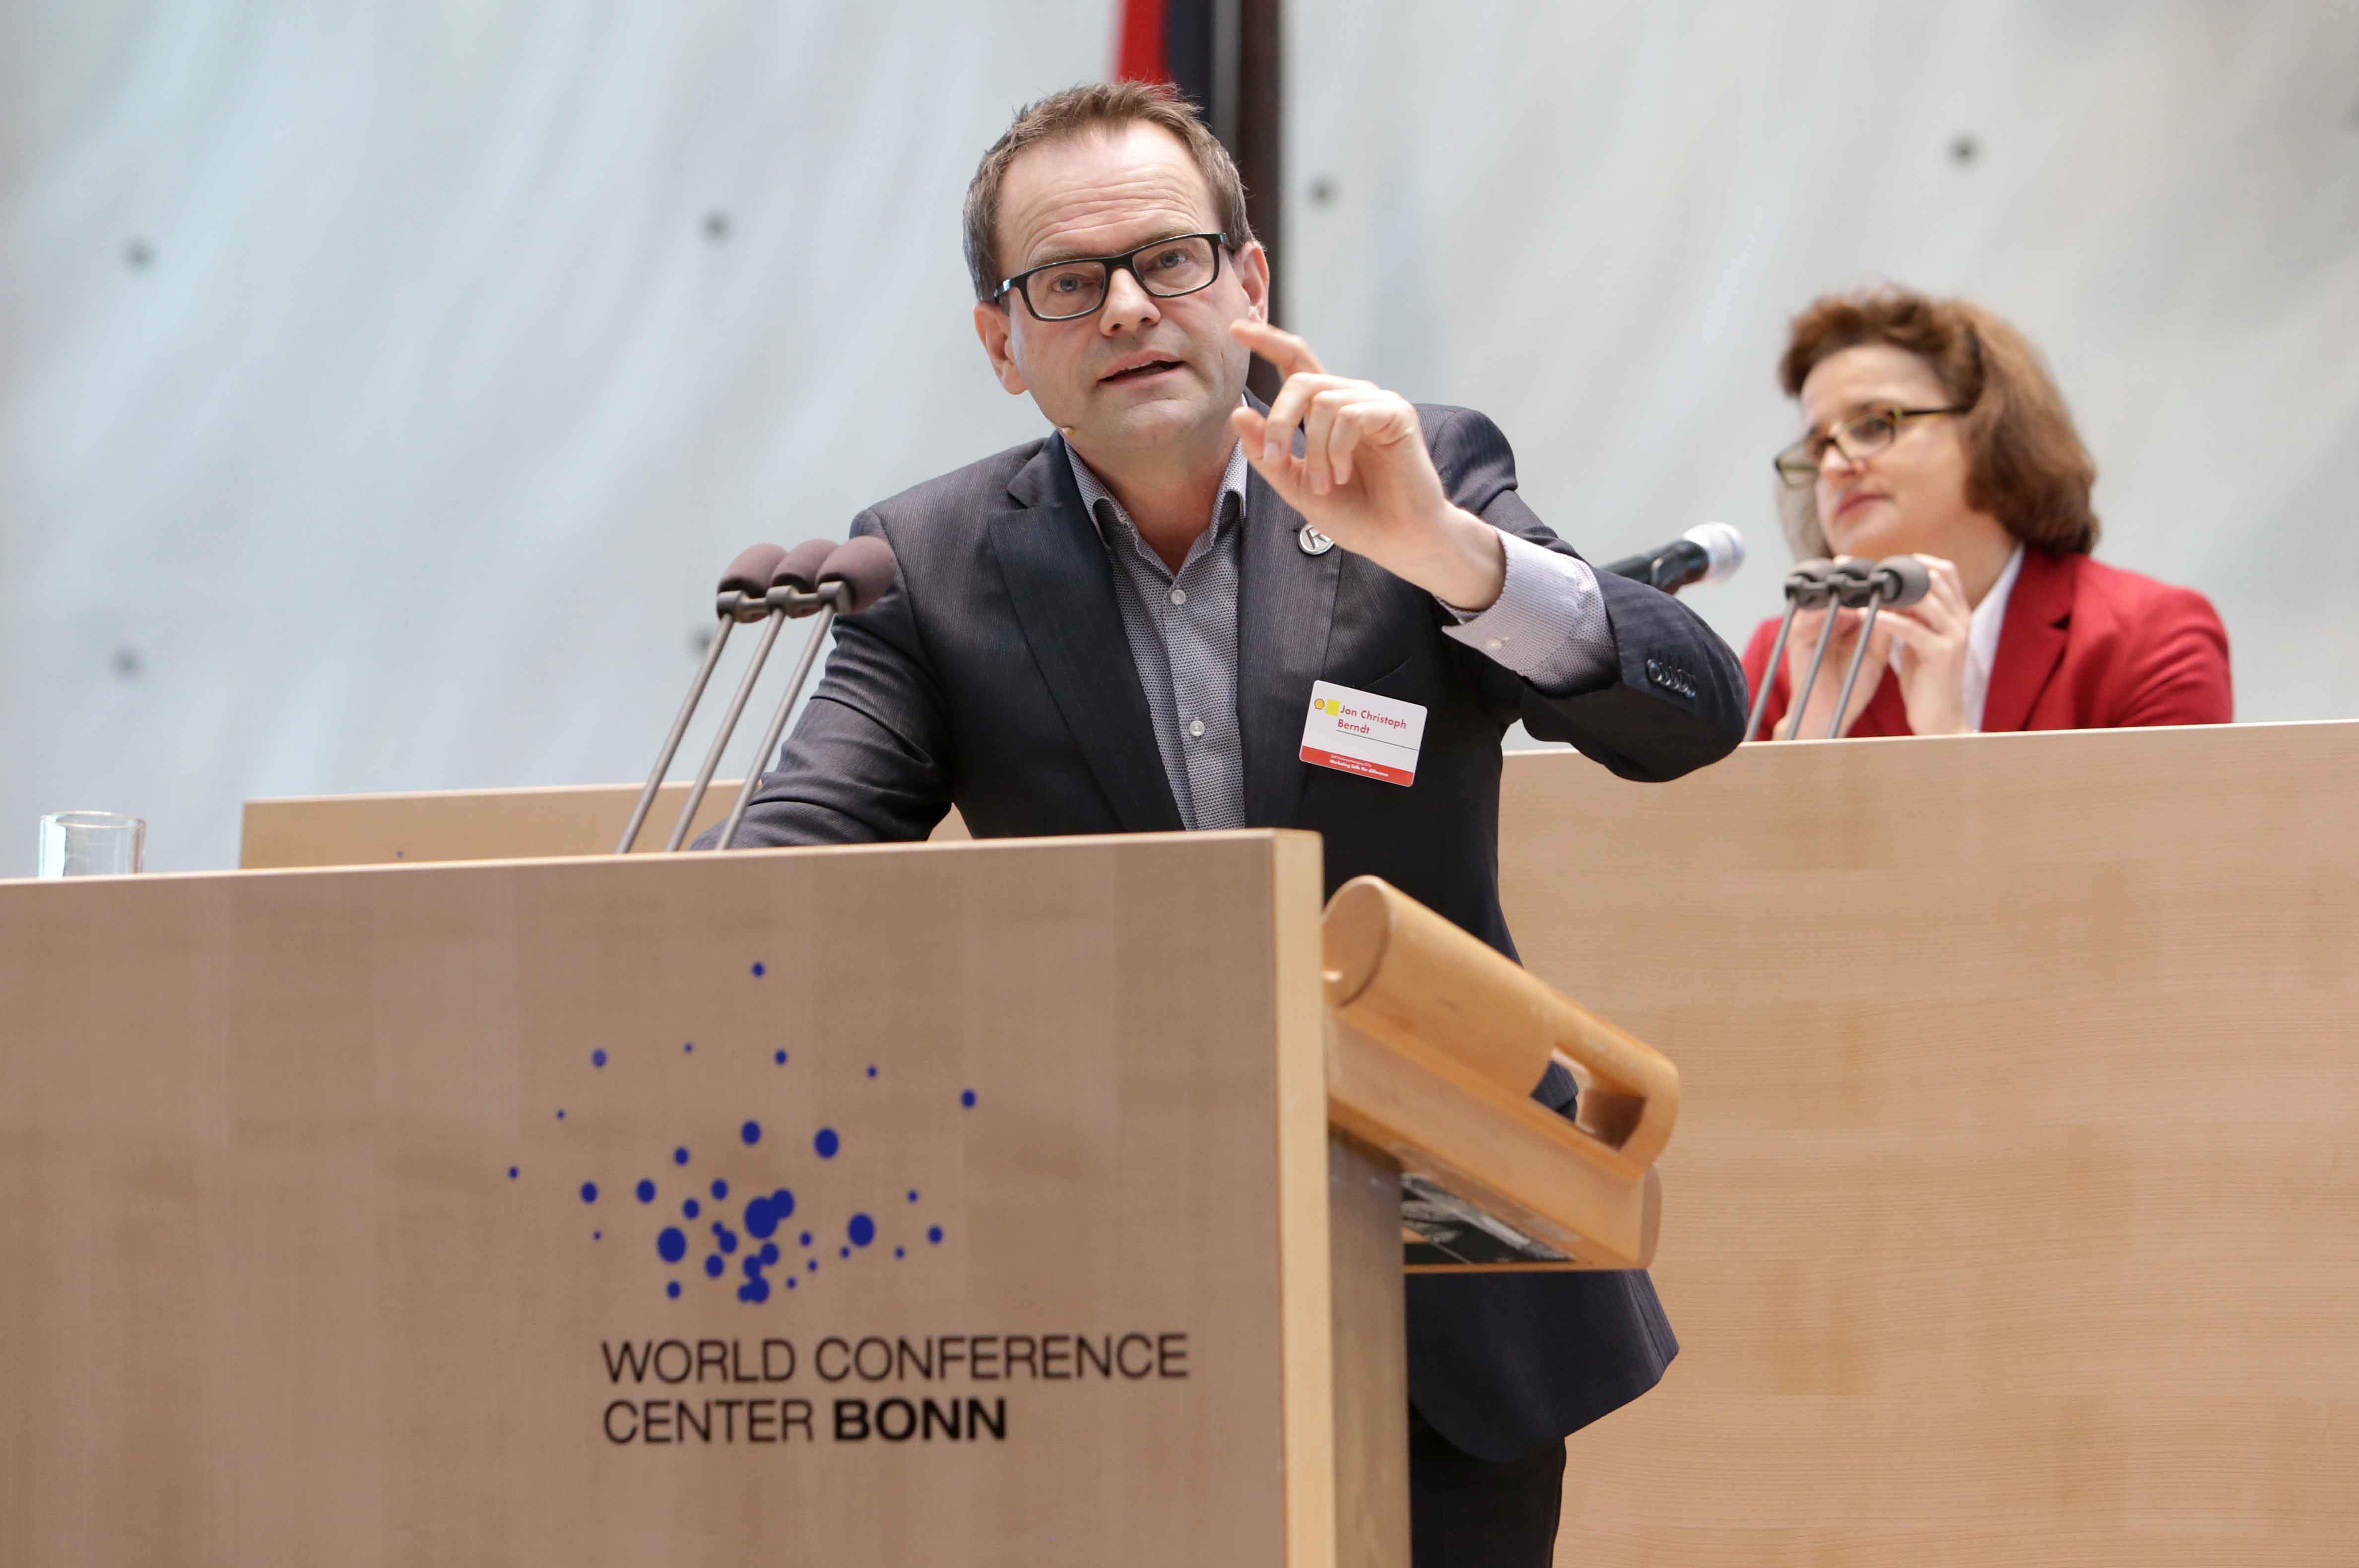 160309-shell-bundestag-copyright-jrn-wolter-6